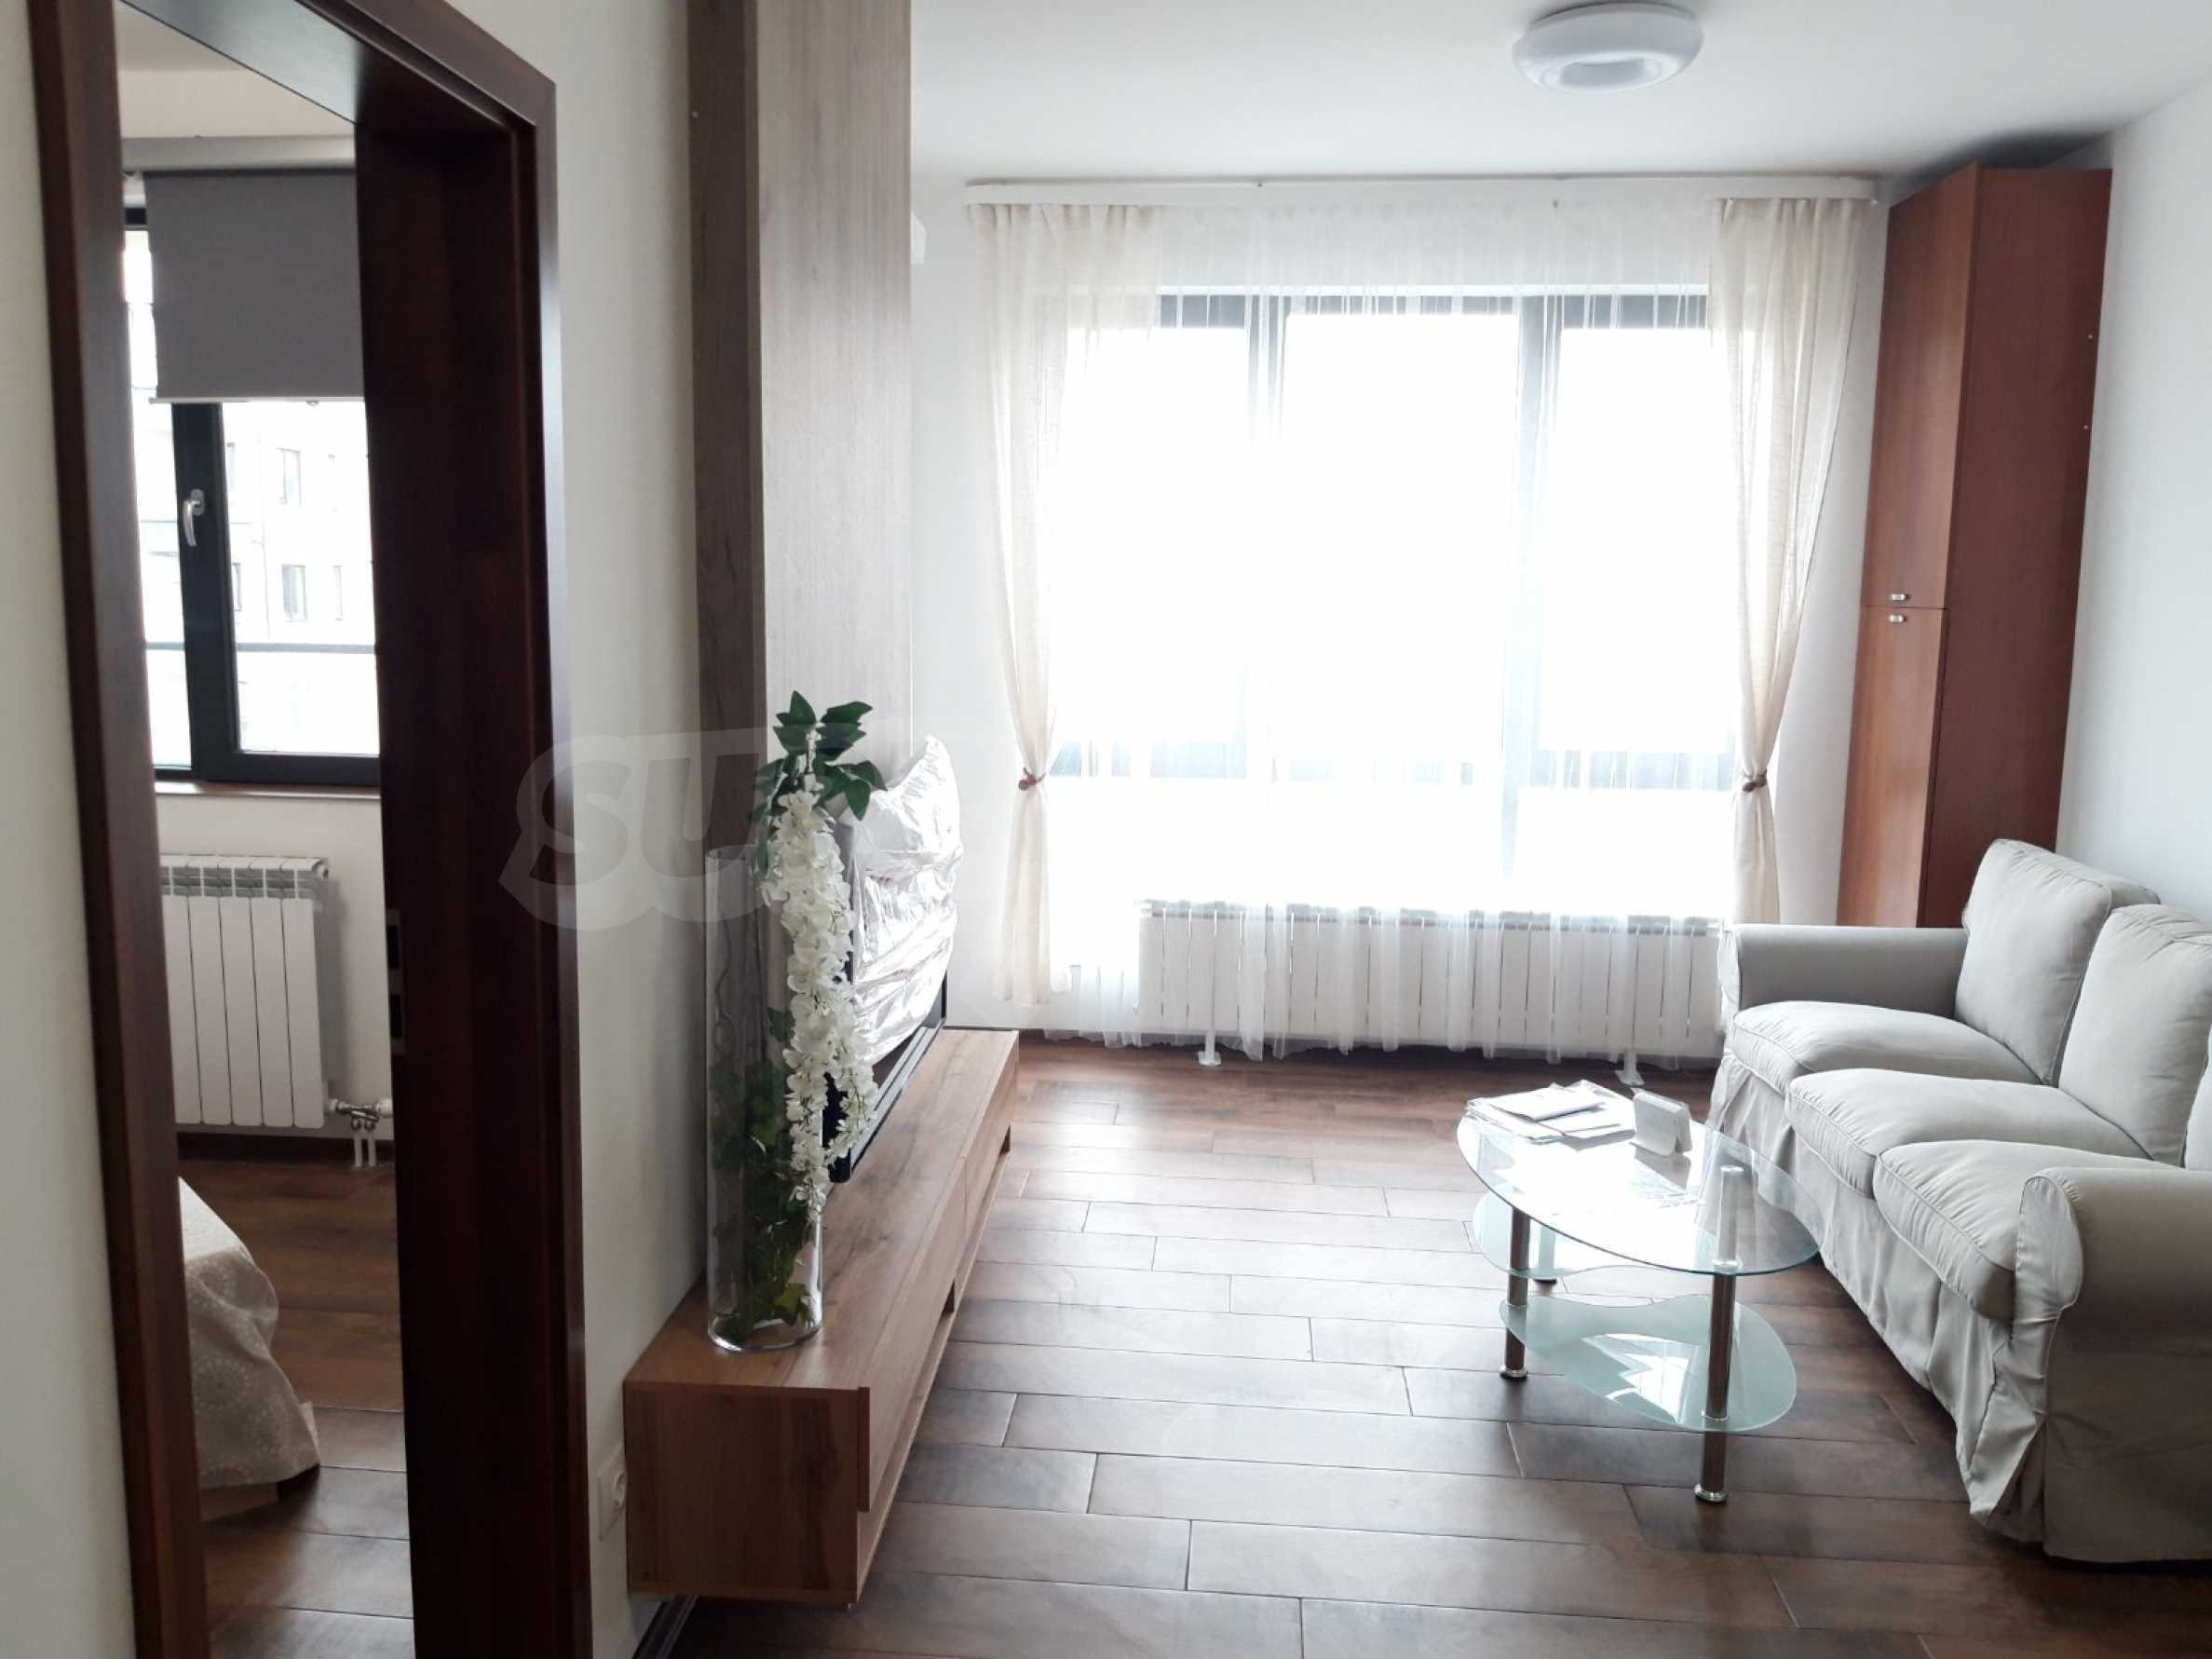 Brand new, one-bedroom apartment with parking space in Vitosha district 2